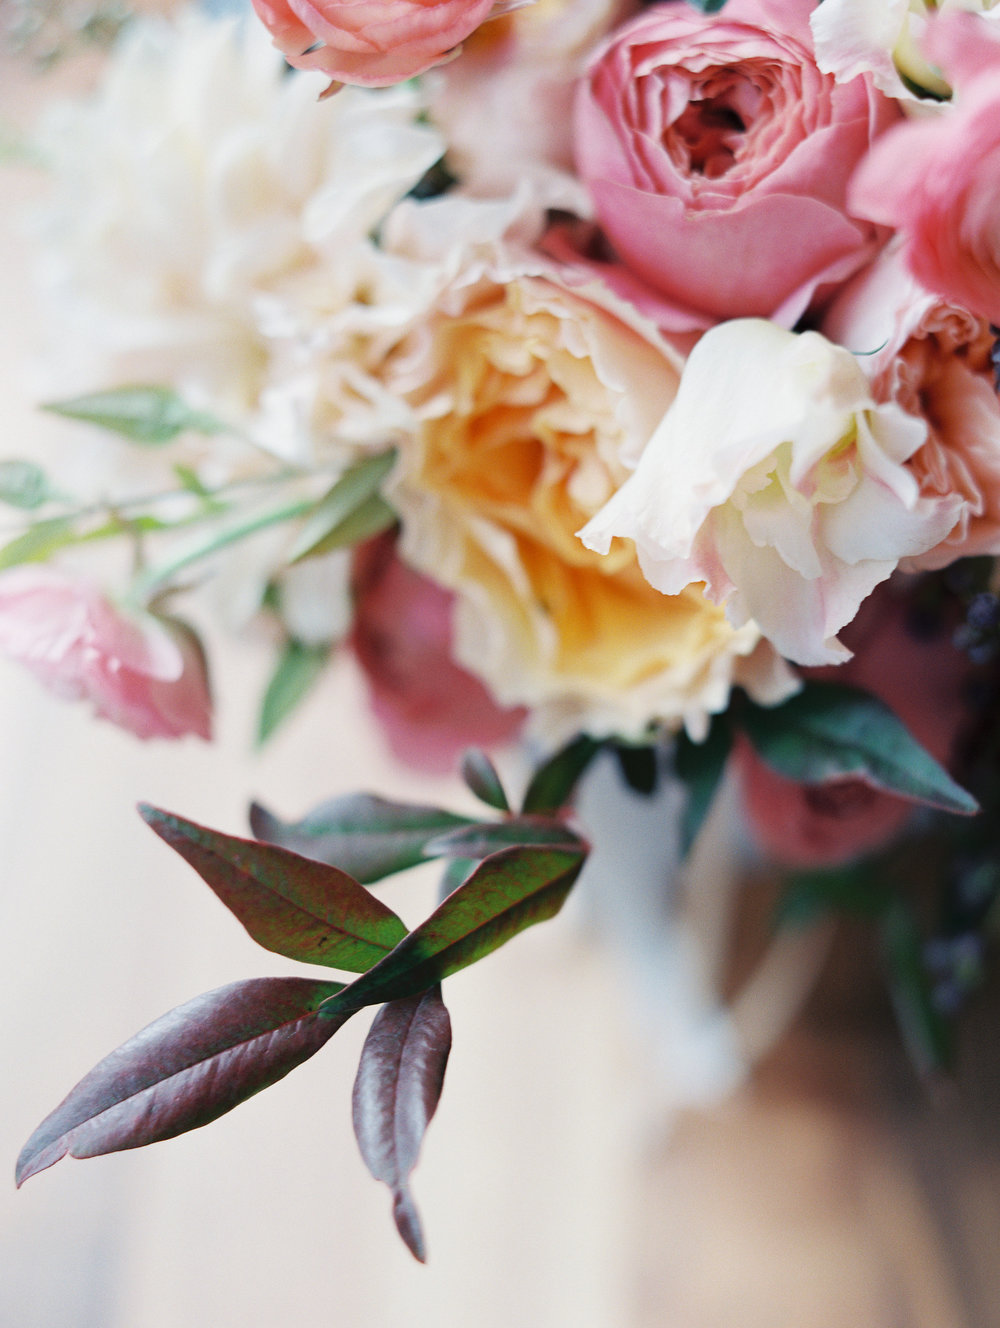 Floral by Fleur Inc, Photo by Clary Pfeiffer